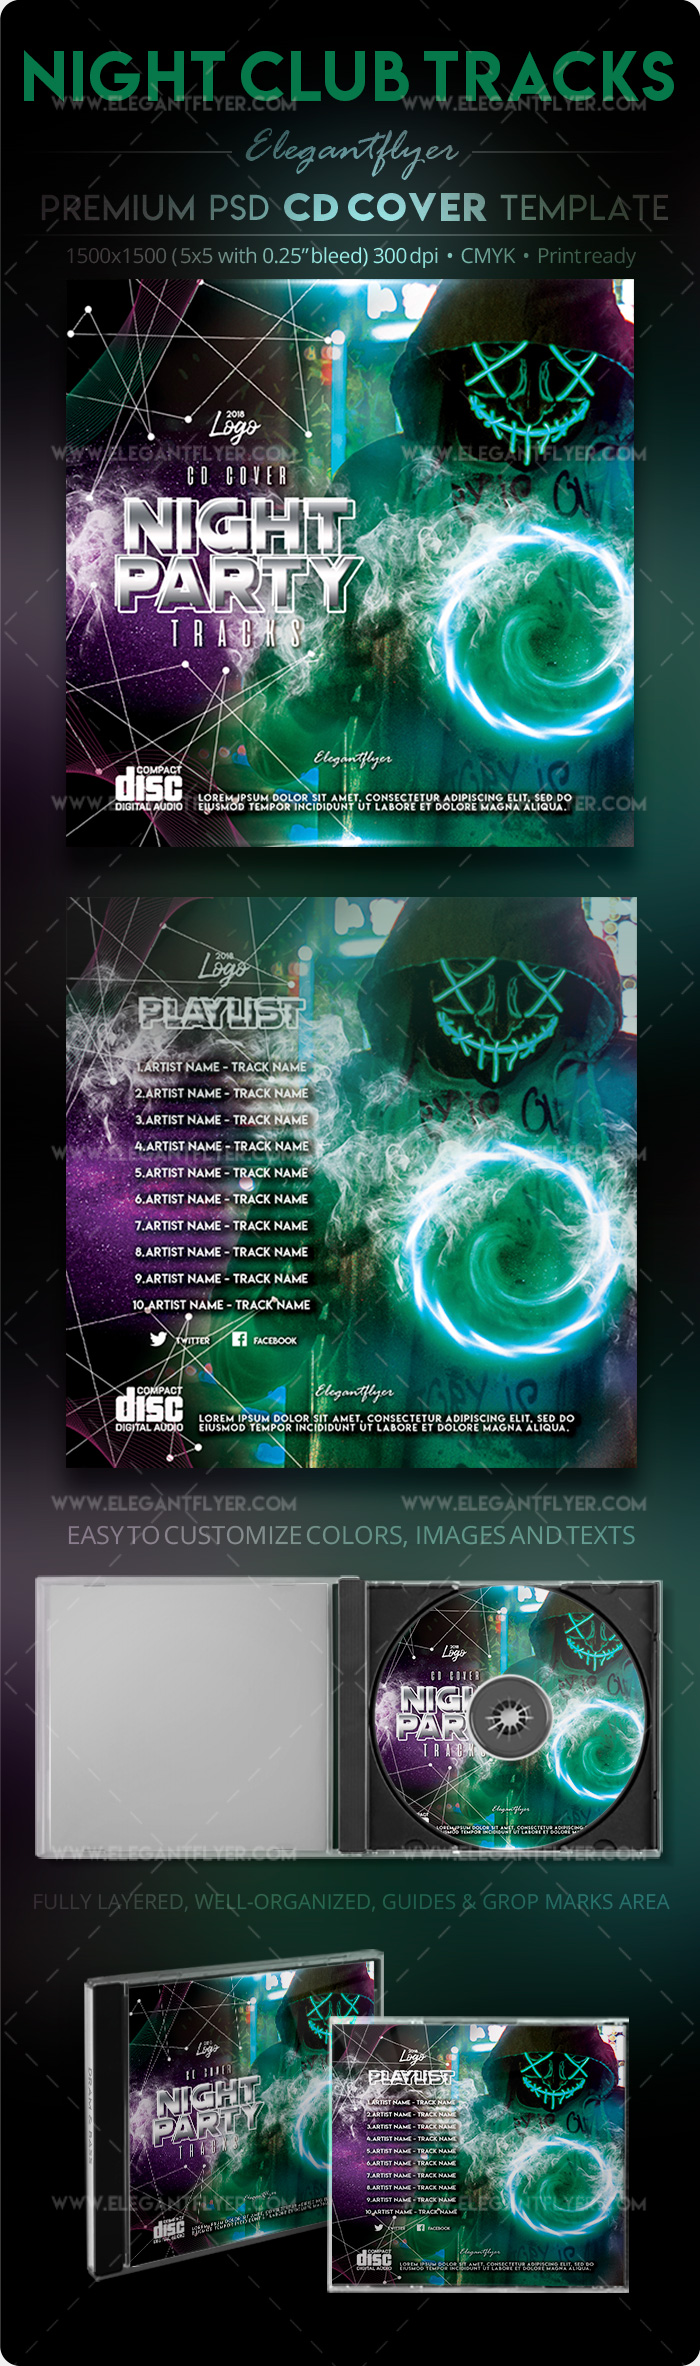 Night Club Tracks – PSD CD Cover Template